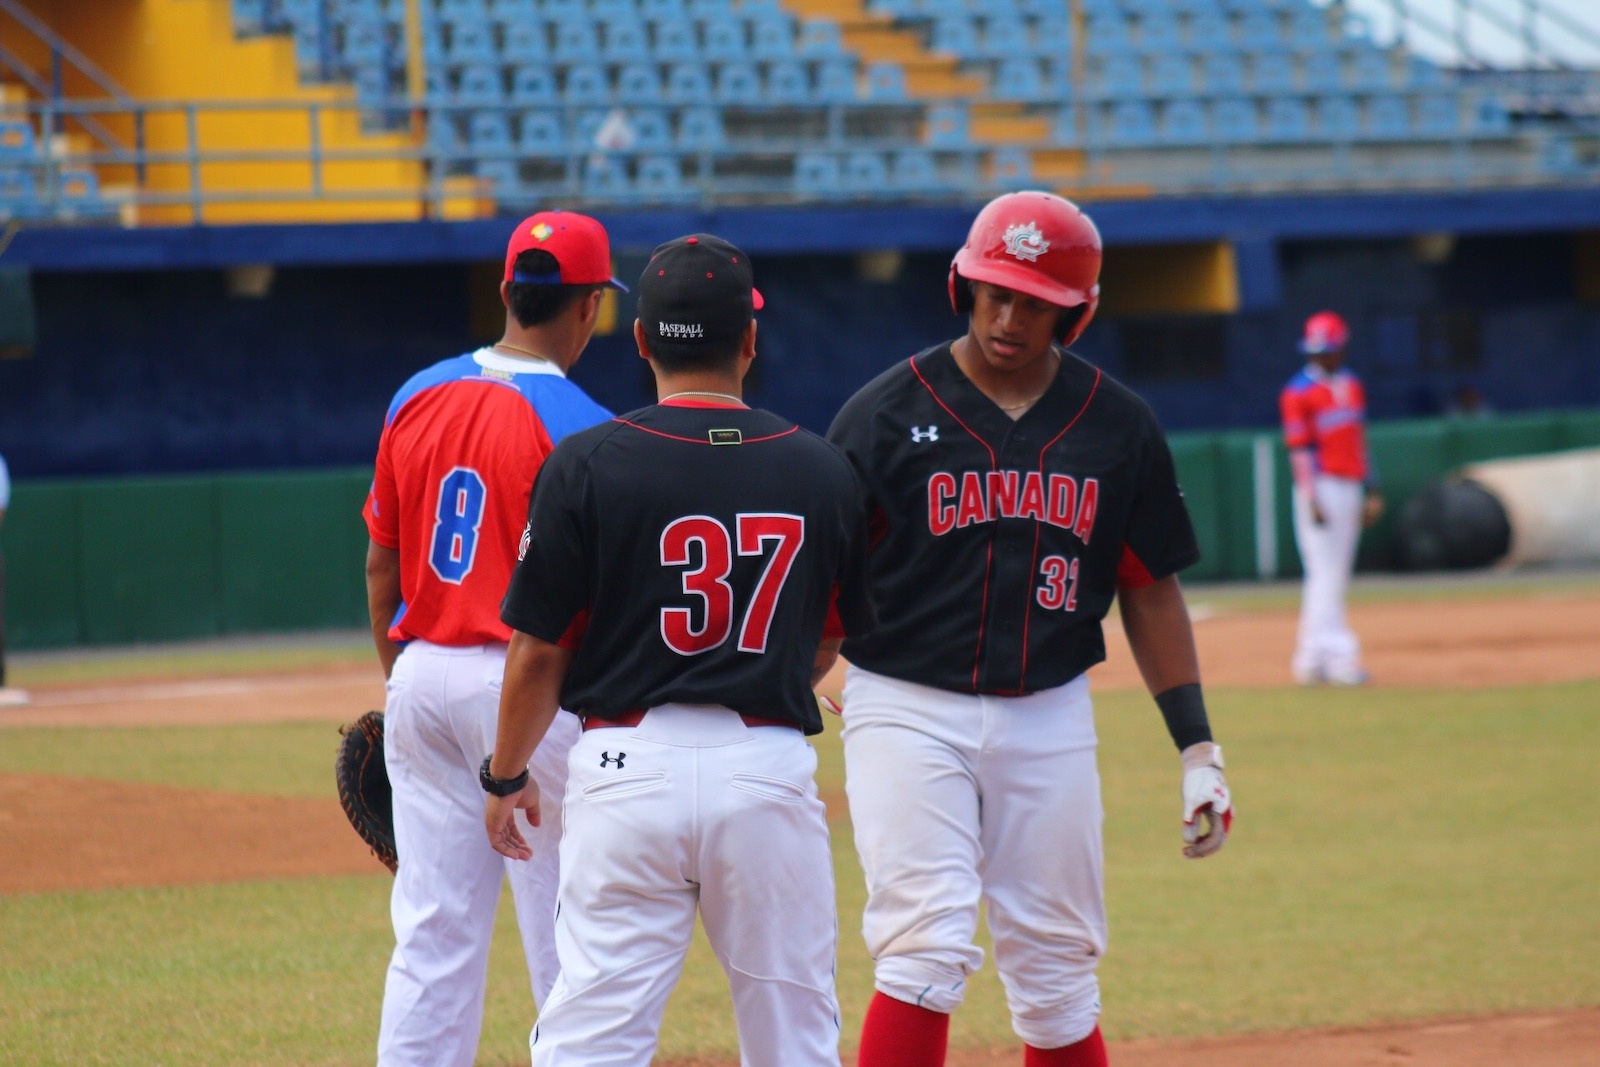 U18 World Qualifier: Canada falls to Dominican Republic to close out Super Round